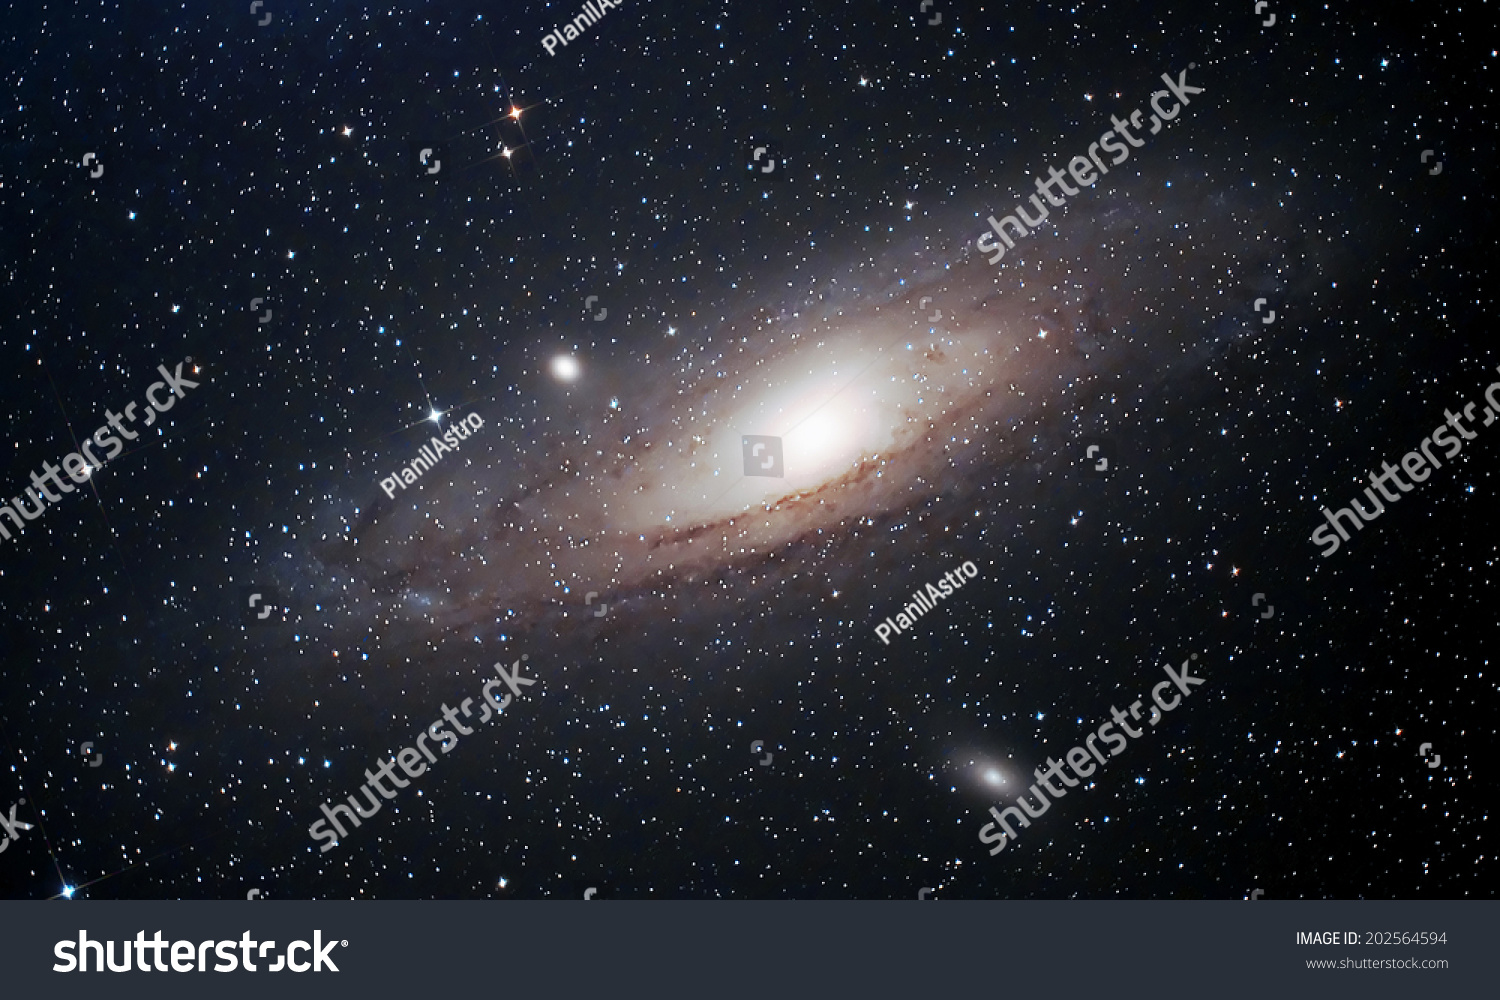 andromeda galaxy distance from - photo #18